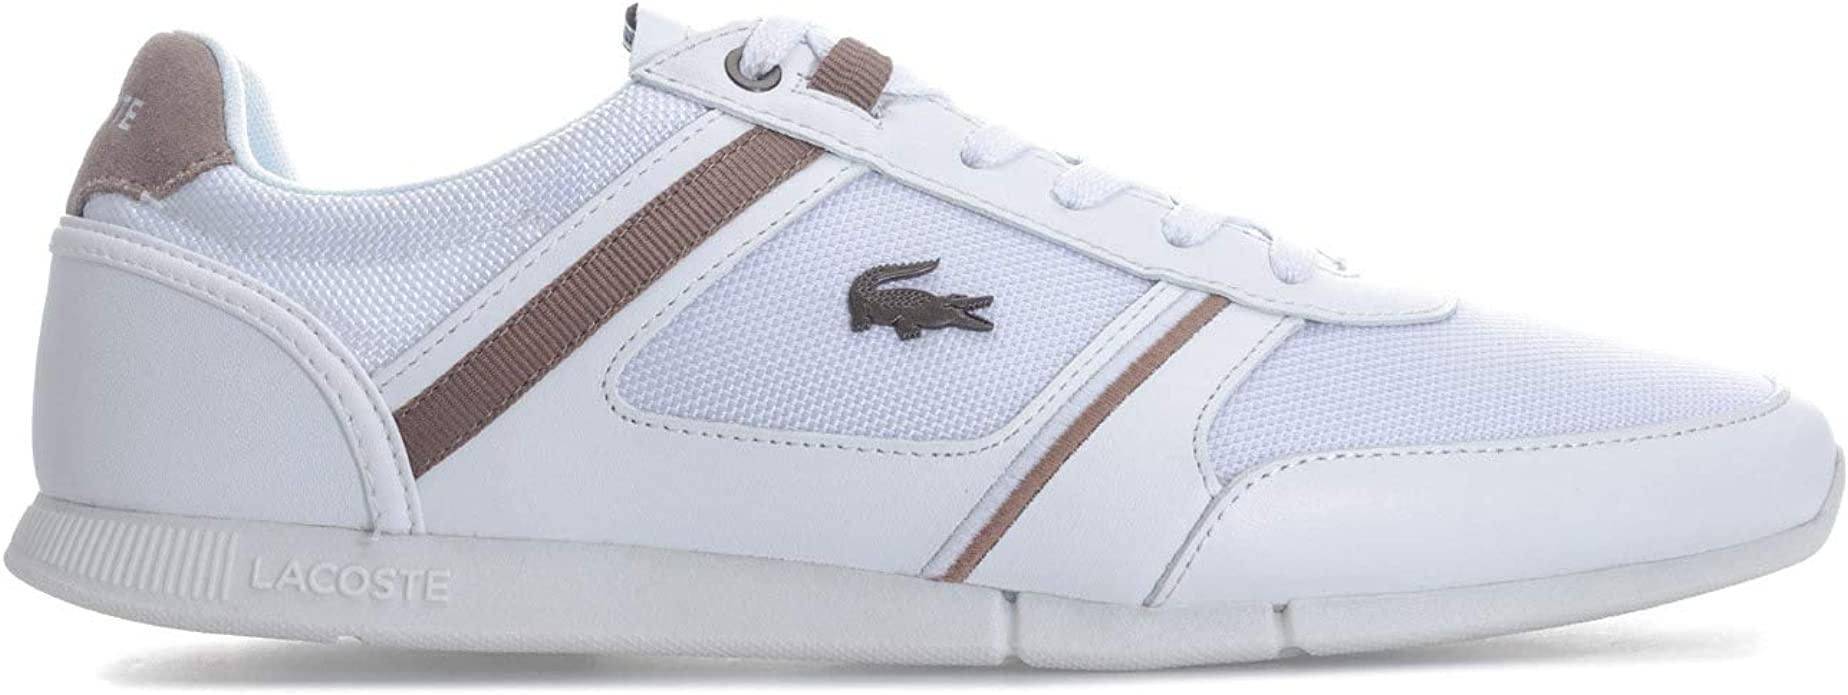 jd lacoste trainers mens promo code for